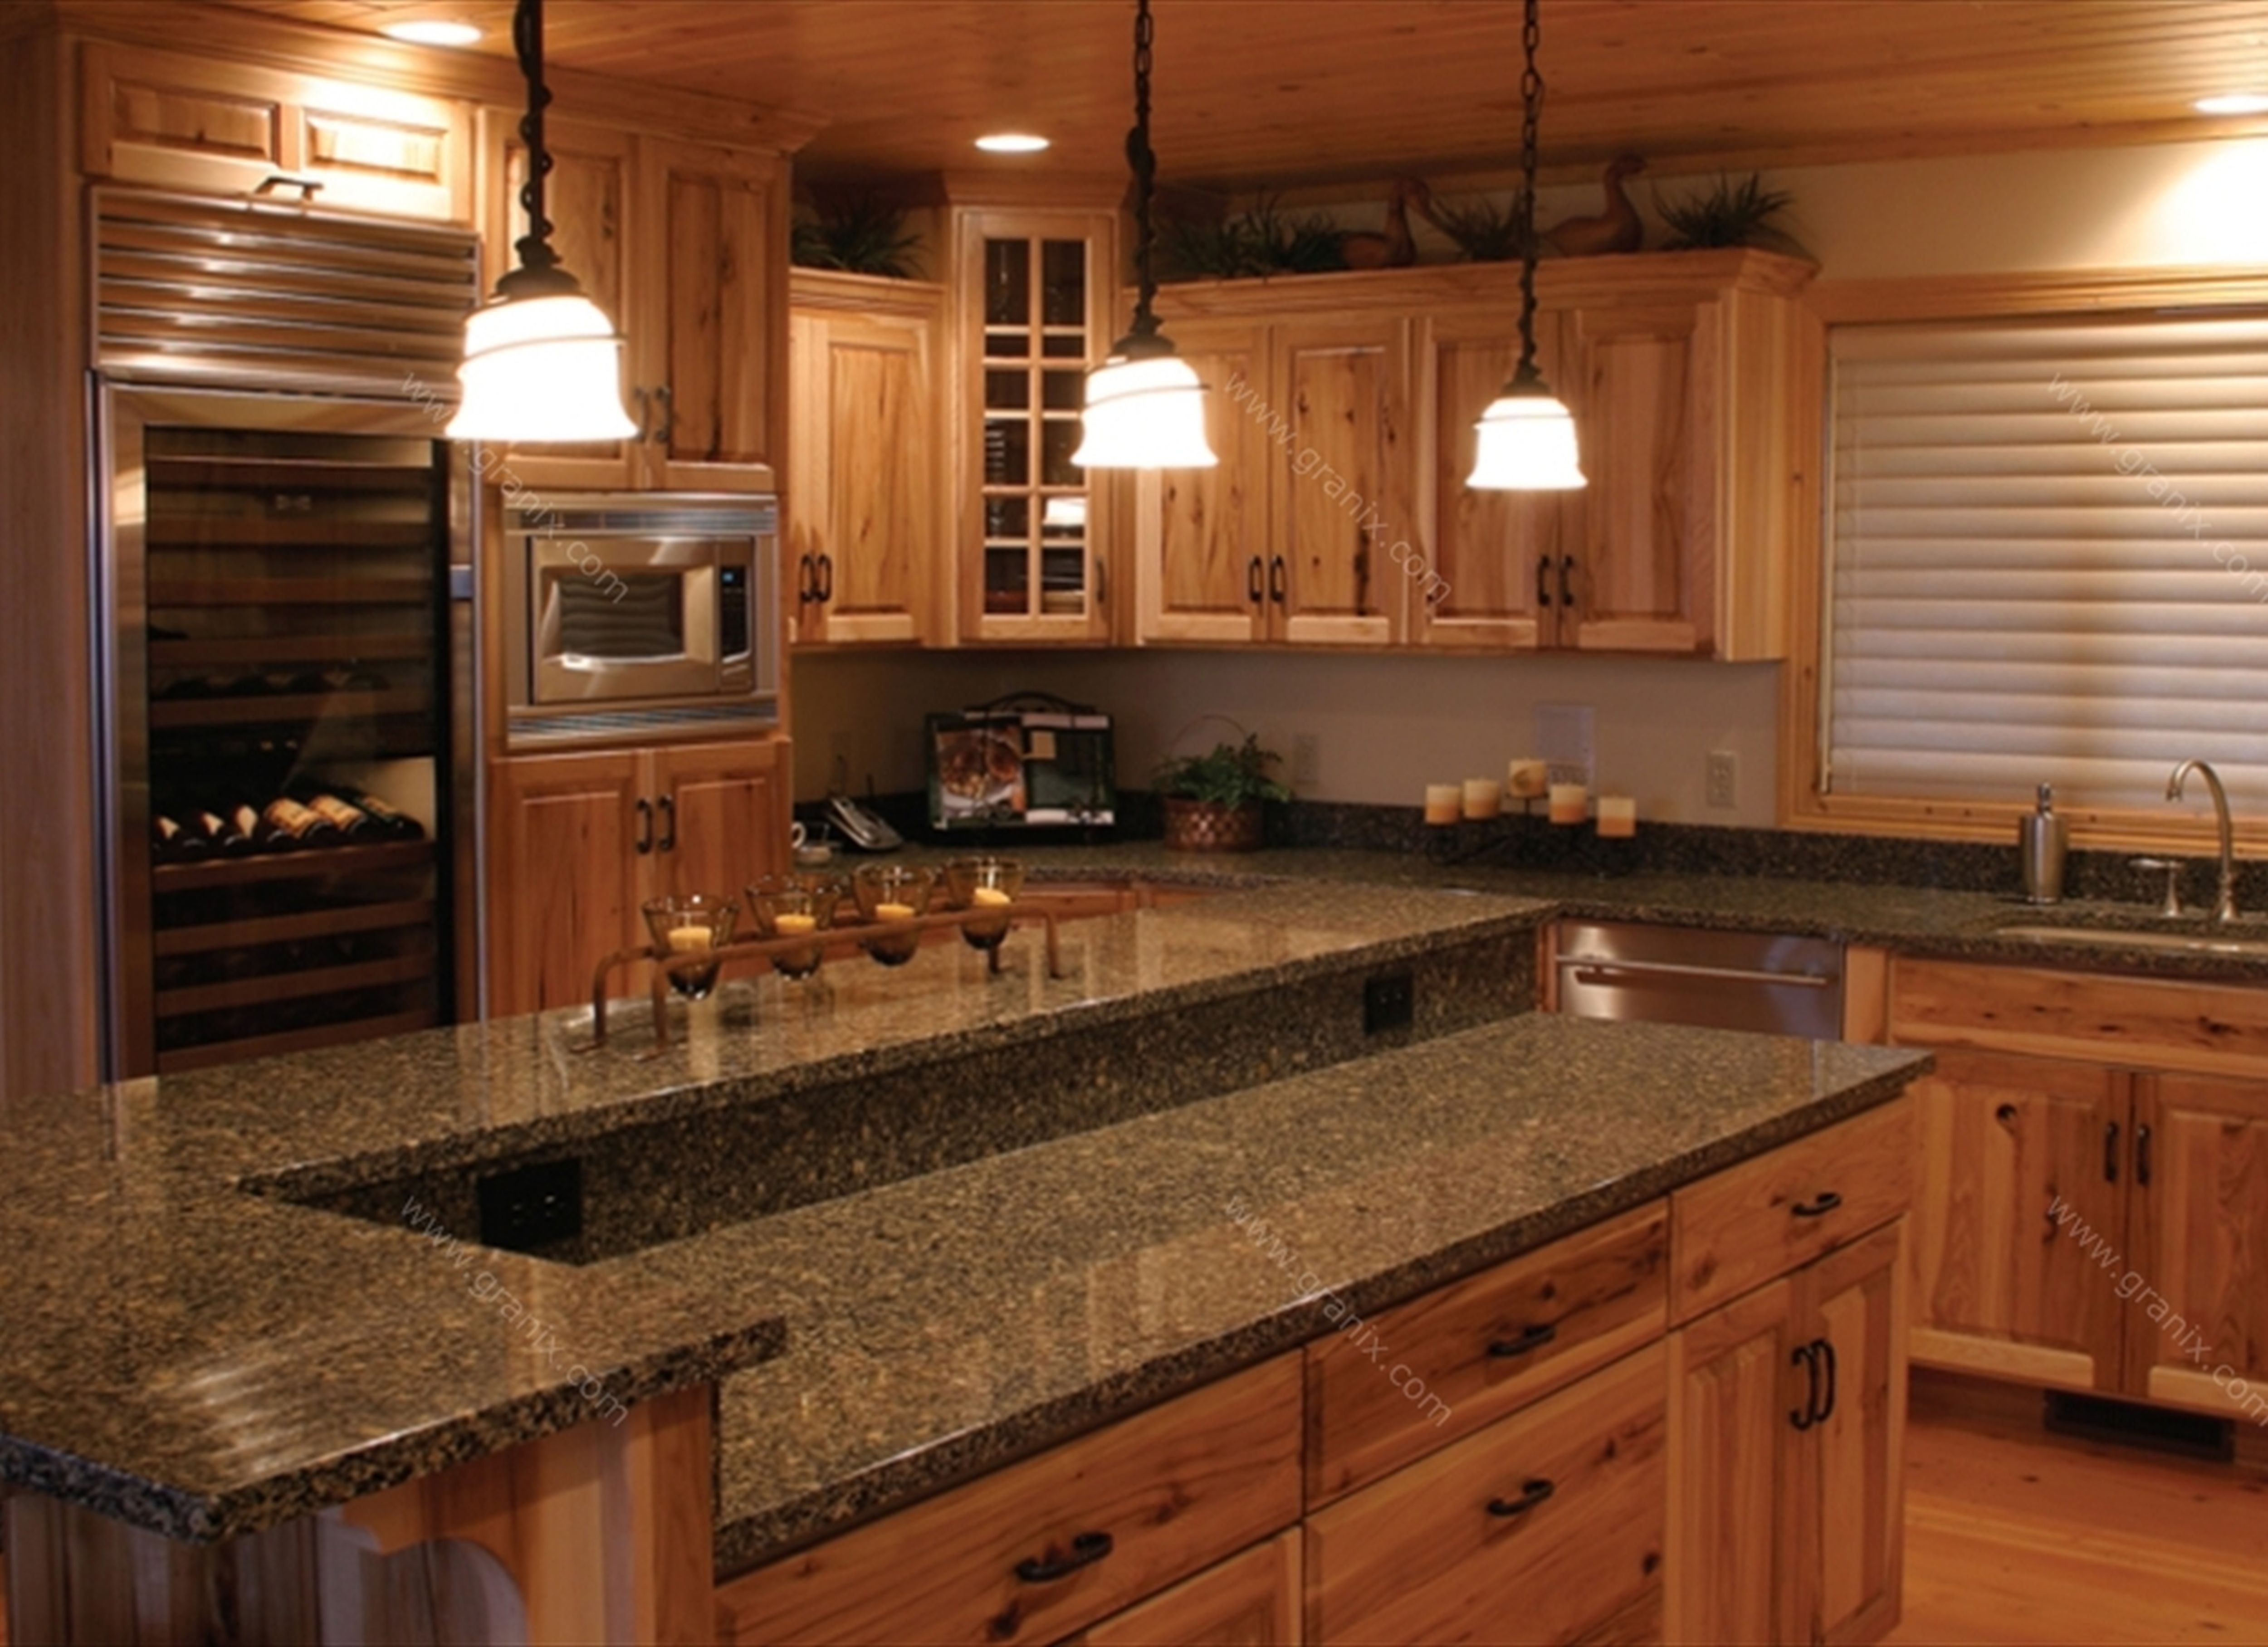 lowes kitchen cabinets kitchen countertops home depot 25 best ideas about Lowes Kitchen Cabinets on Pinterest Dream kitchens Counter top fridge and Farmhouse kitchen cabinets